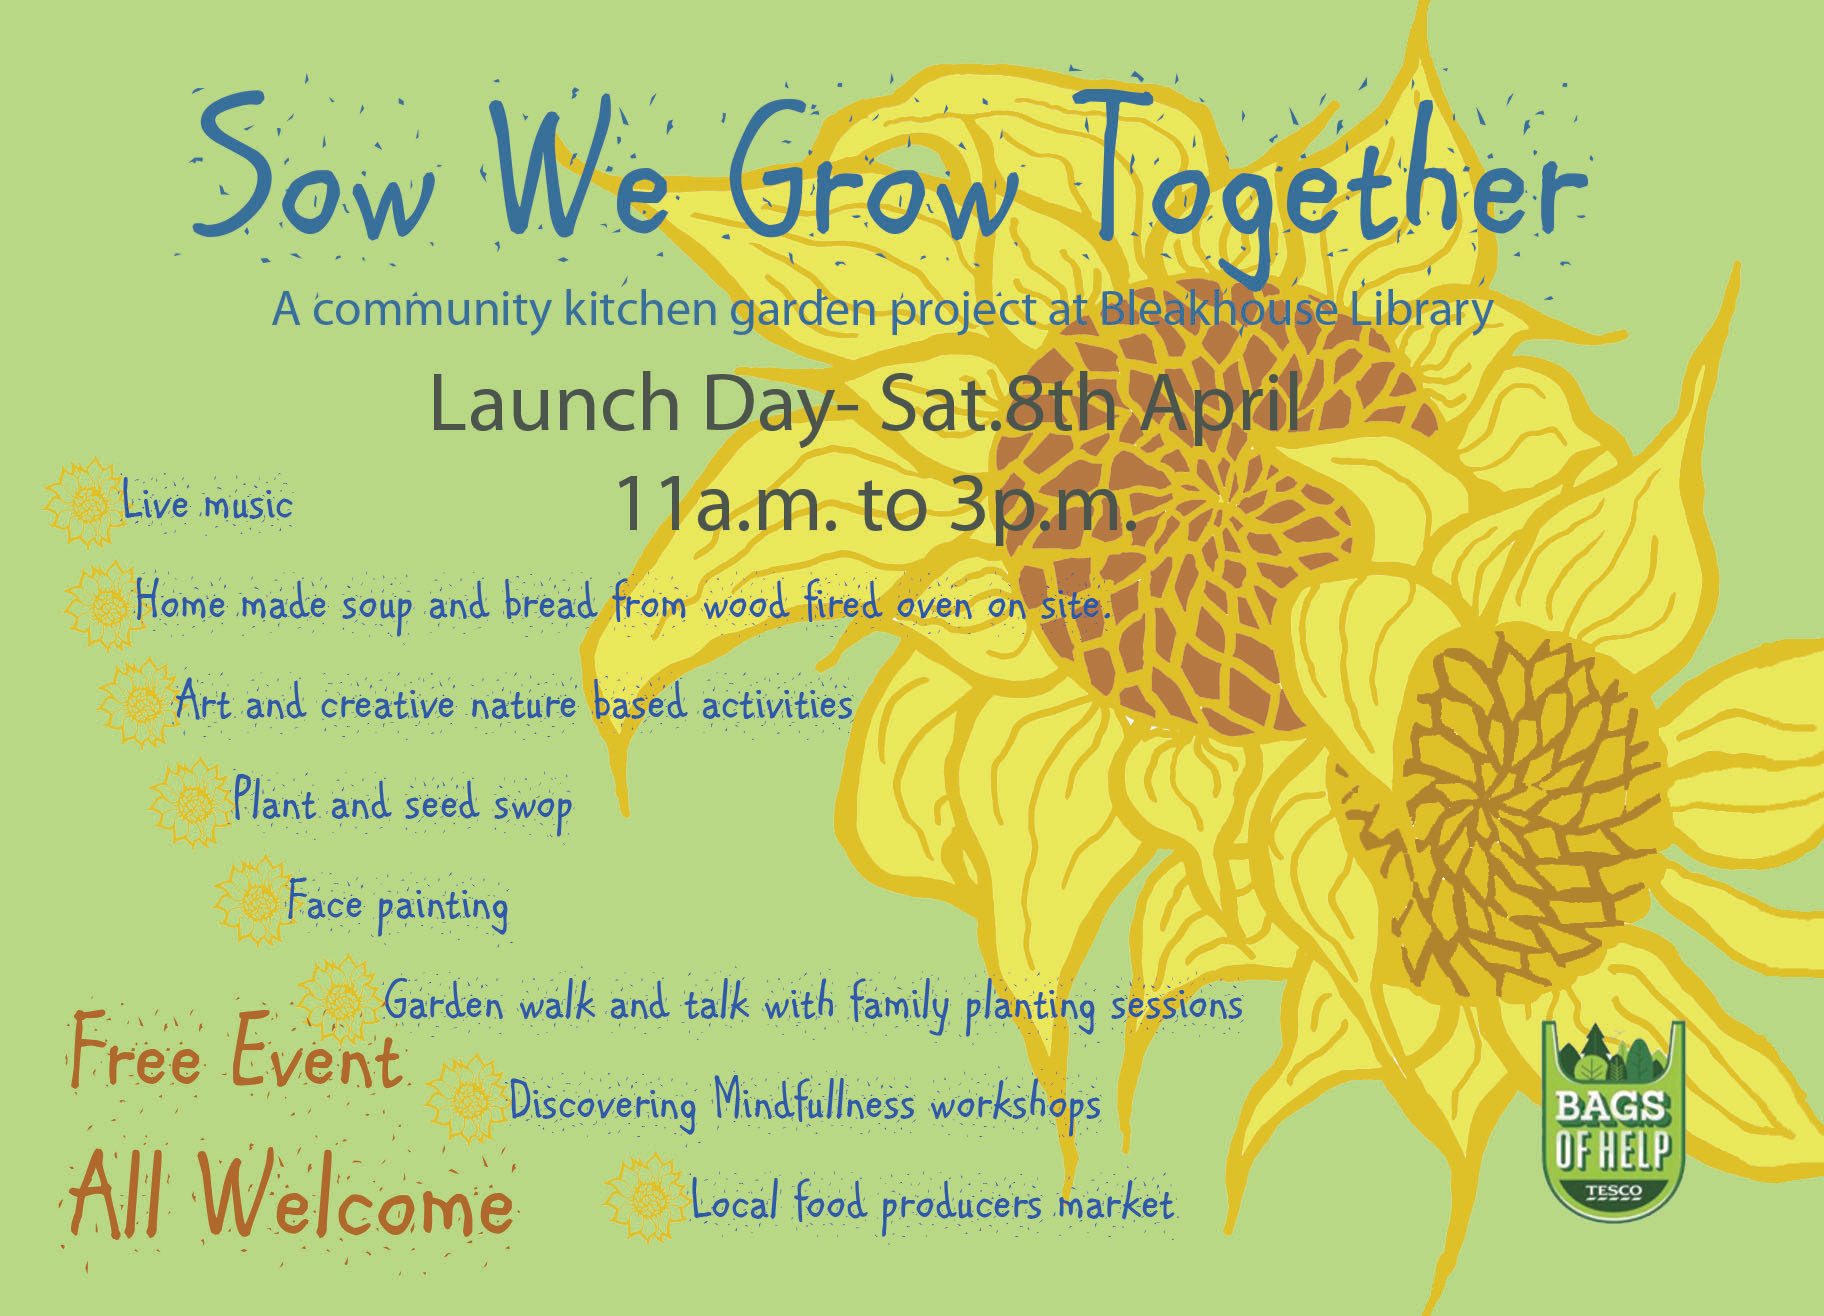 Sow We Grow Together Launch Event at Bleakhouse Library on 8th April 2017 11 - 3